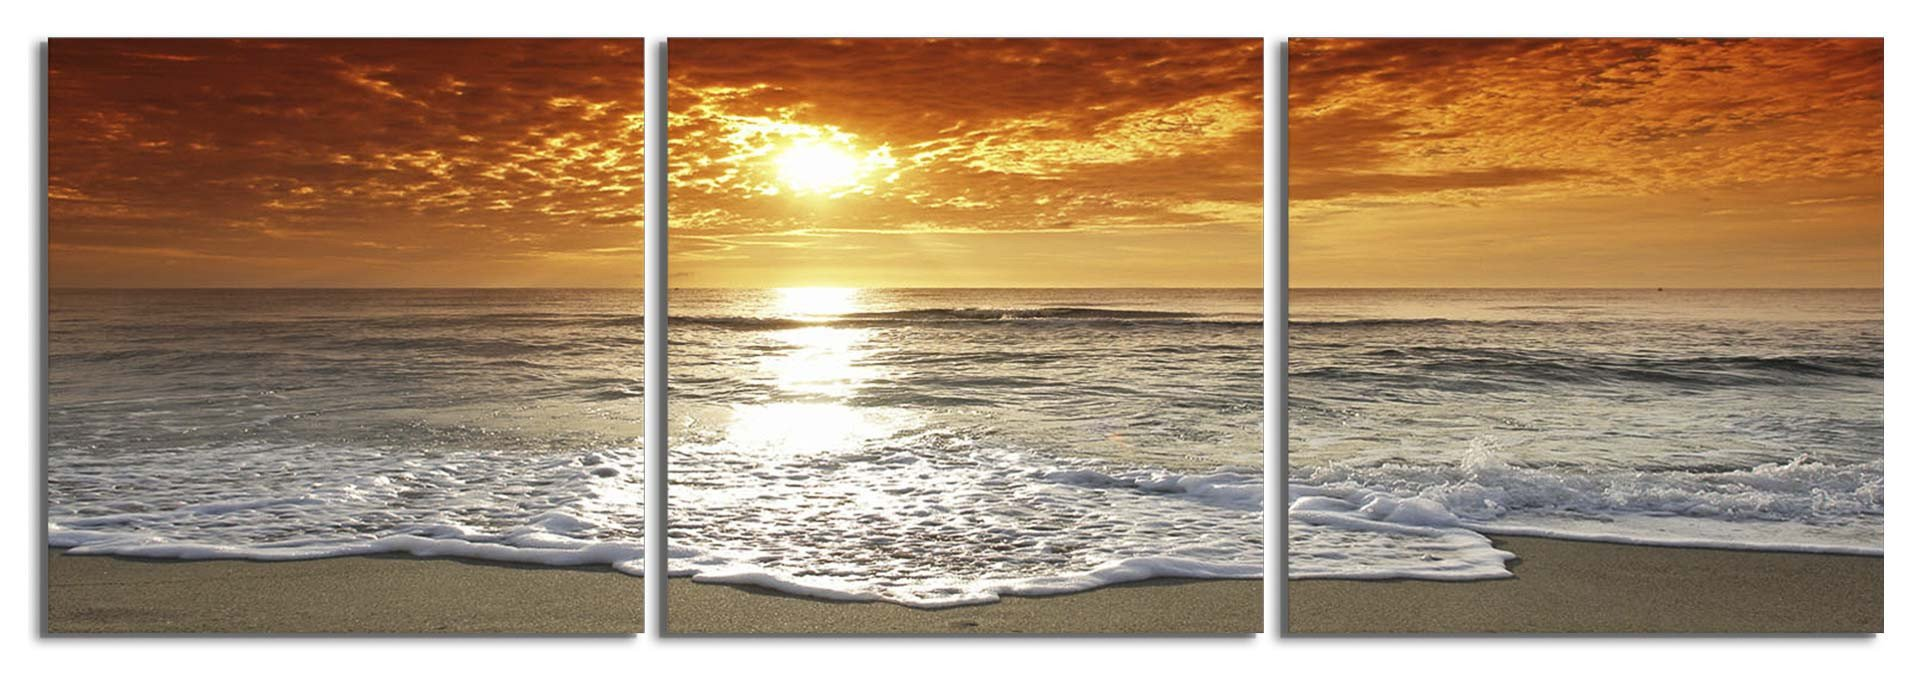 Three Panel Wall Art 3 panel wall art: corsica france photography print – elementem